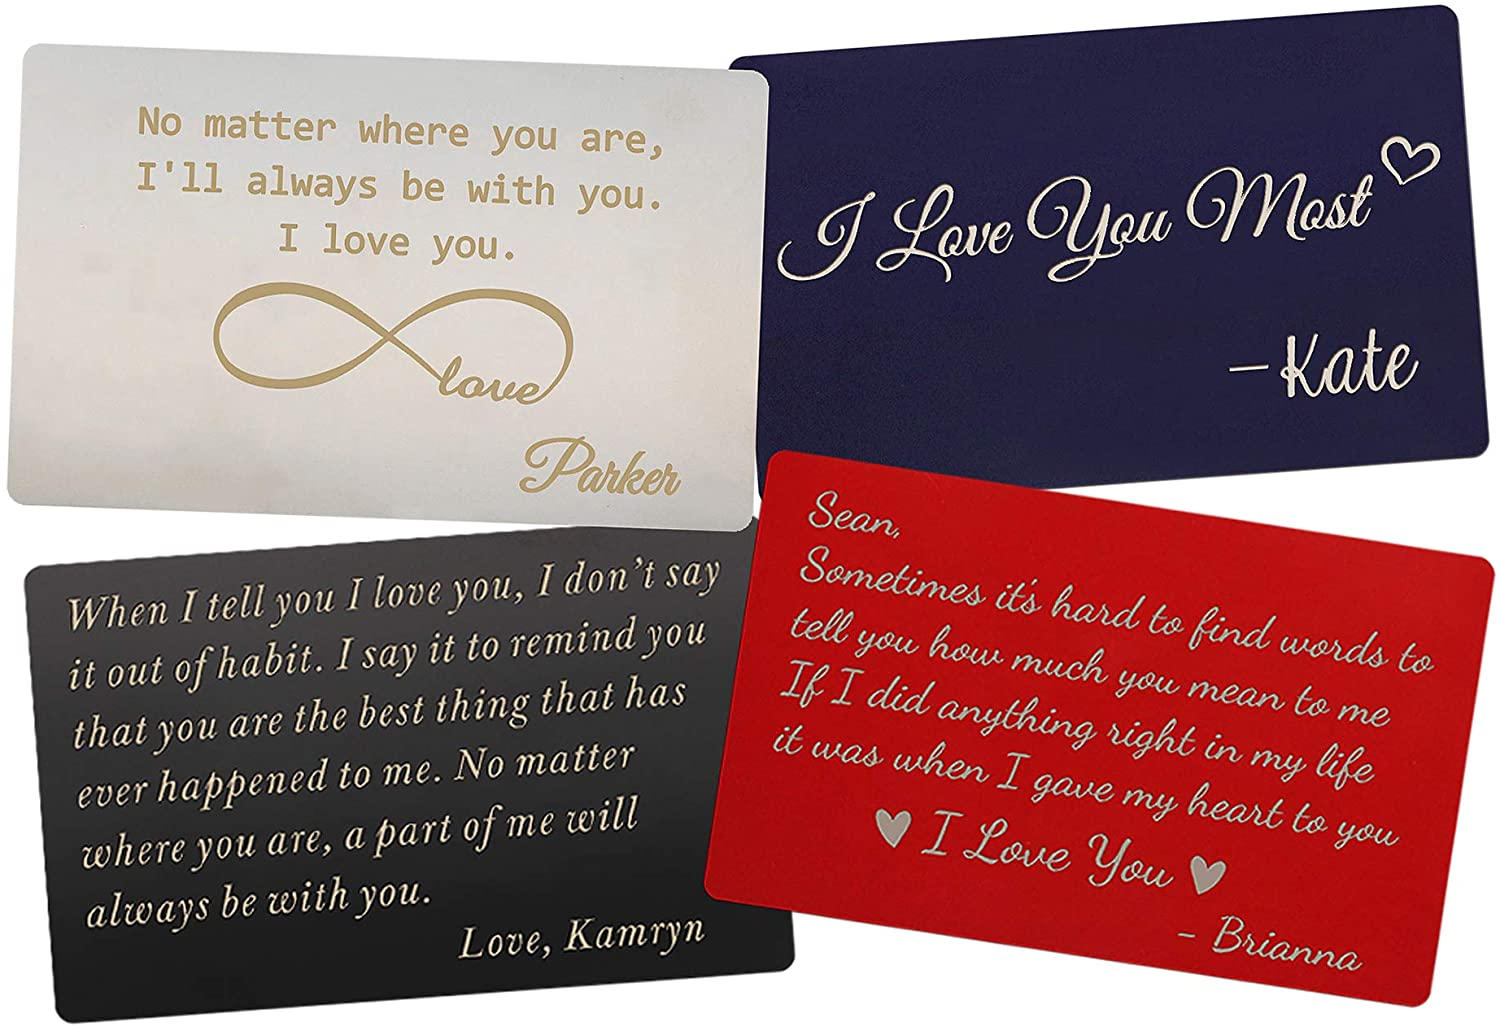 Personalized Wallet Card - The Perfect Engraved Anniversary Gifts for Men and Woman, Engraved Wallet Inserts, Metal Wallet Card, Mini Love Note, Deployment Gifts, Boyfriend, Husband Gifts from Wife